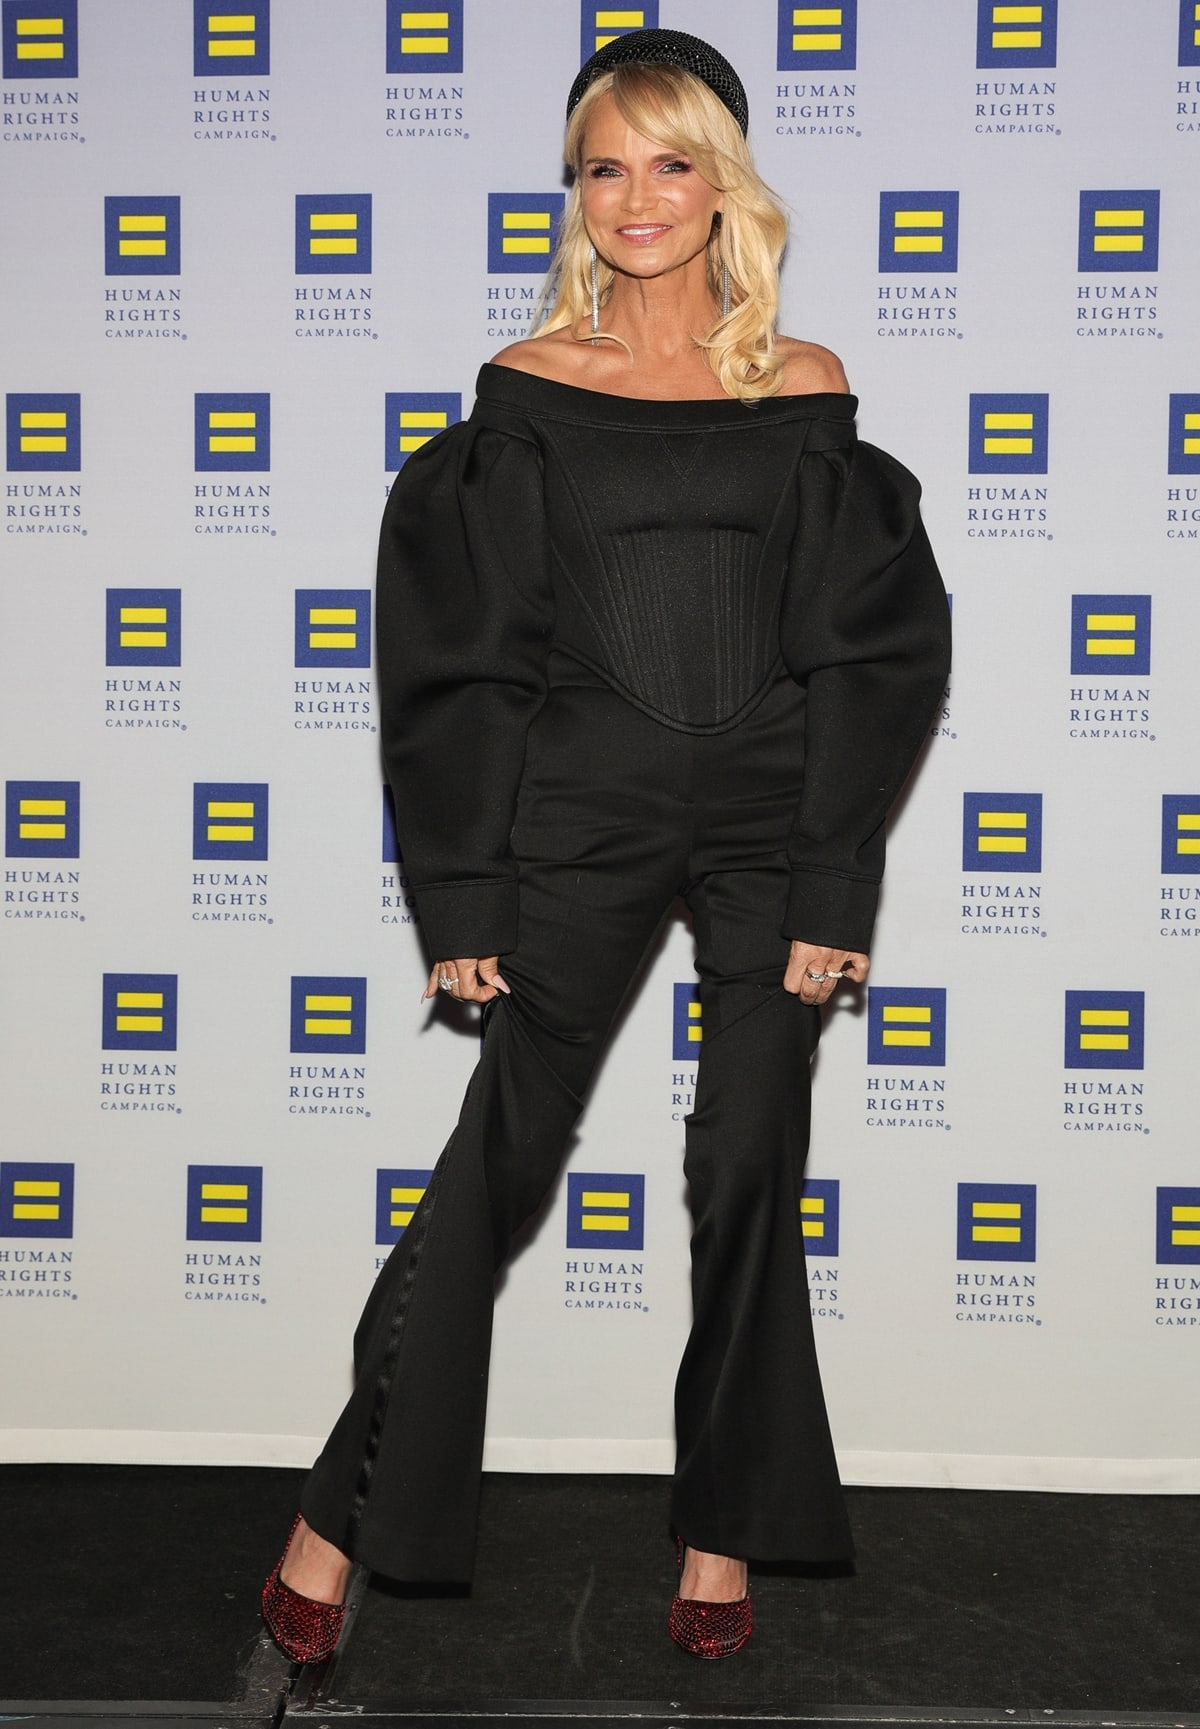 Event honoree Kristin Chenoweth attends the Human Rights Campaign's 19th Annual Greater New York Gala